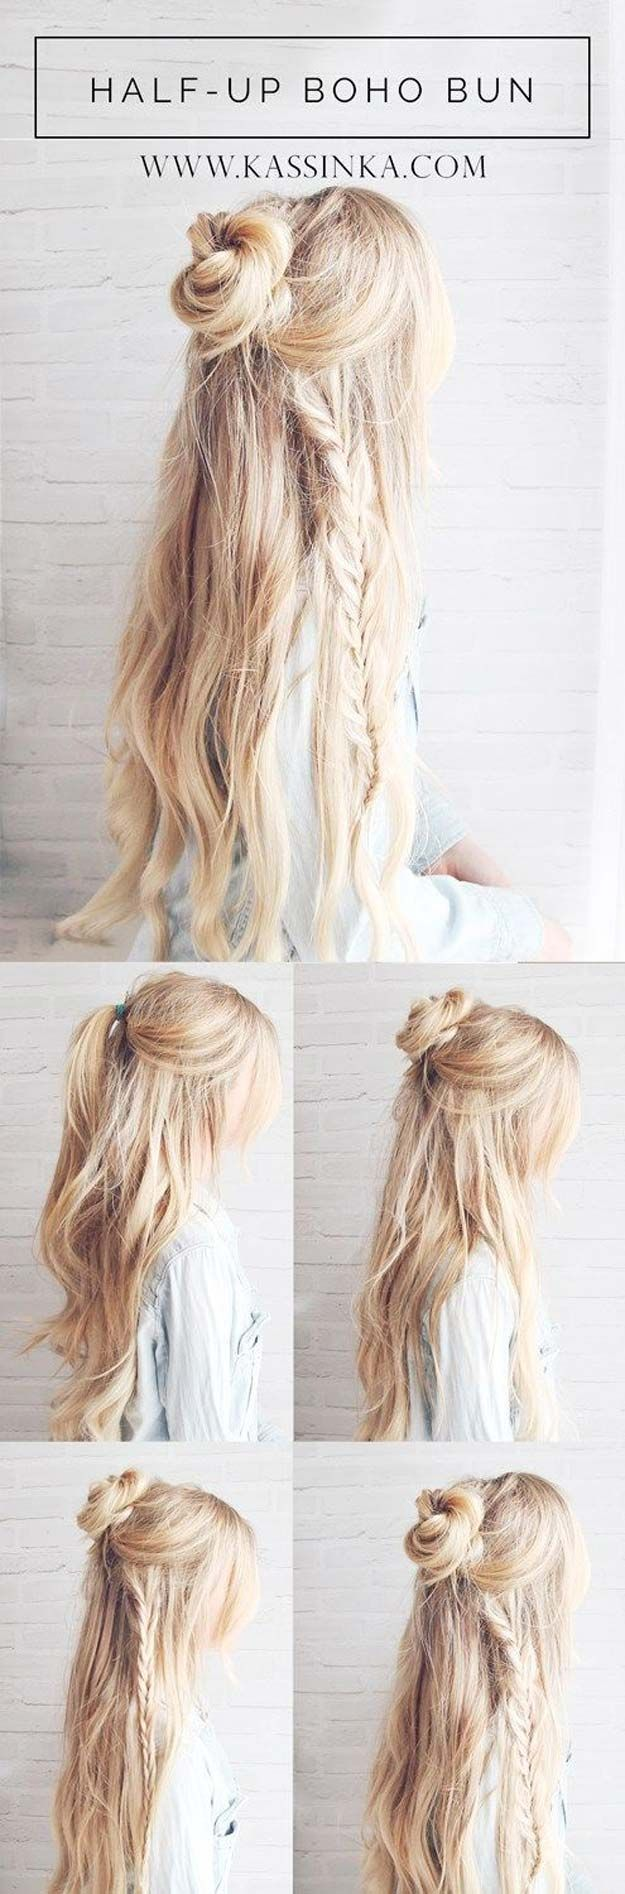 "Best Hairstyles for Long Hair – Boho Braided Bun Hair – Step by Step Tutorials for Easy Curls, Updo, Half Up, Braids and Lazy Girl Looks. Prom Ideas, Special Occasion Hair and Braiding Instructions for Teens, Teenagers and Adults, Women and Girls <a href=""http://diyprojectsforteens.com/best-hairstyles-long-hair"" rel=""nofollow"" target=""_blank"">diyprojectsfortee…</a><p><a href=""http://www.homeinteriordesign.org/2018/02/short-guide-to-interior-decoration.html"">Short guide to interior decoration</a></p>"